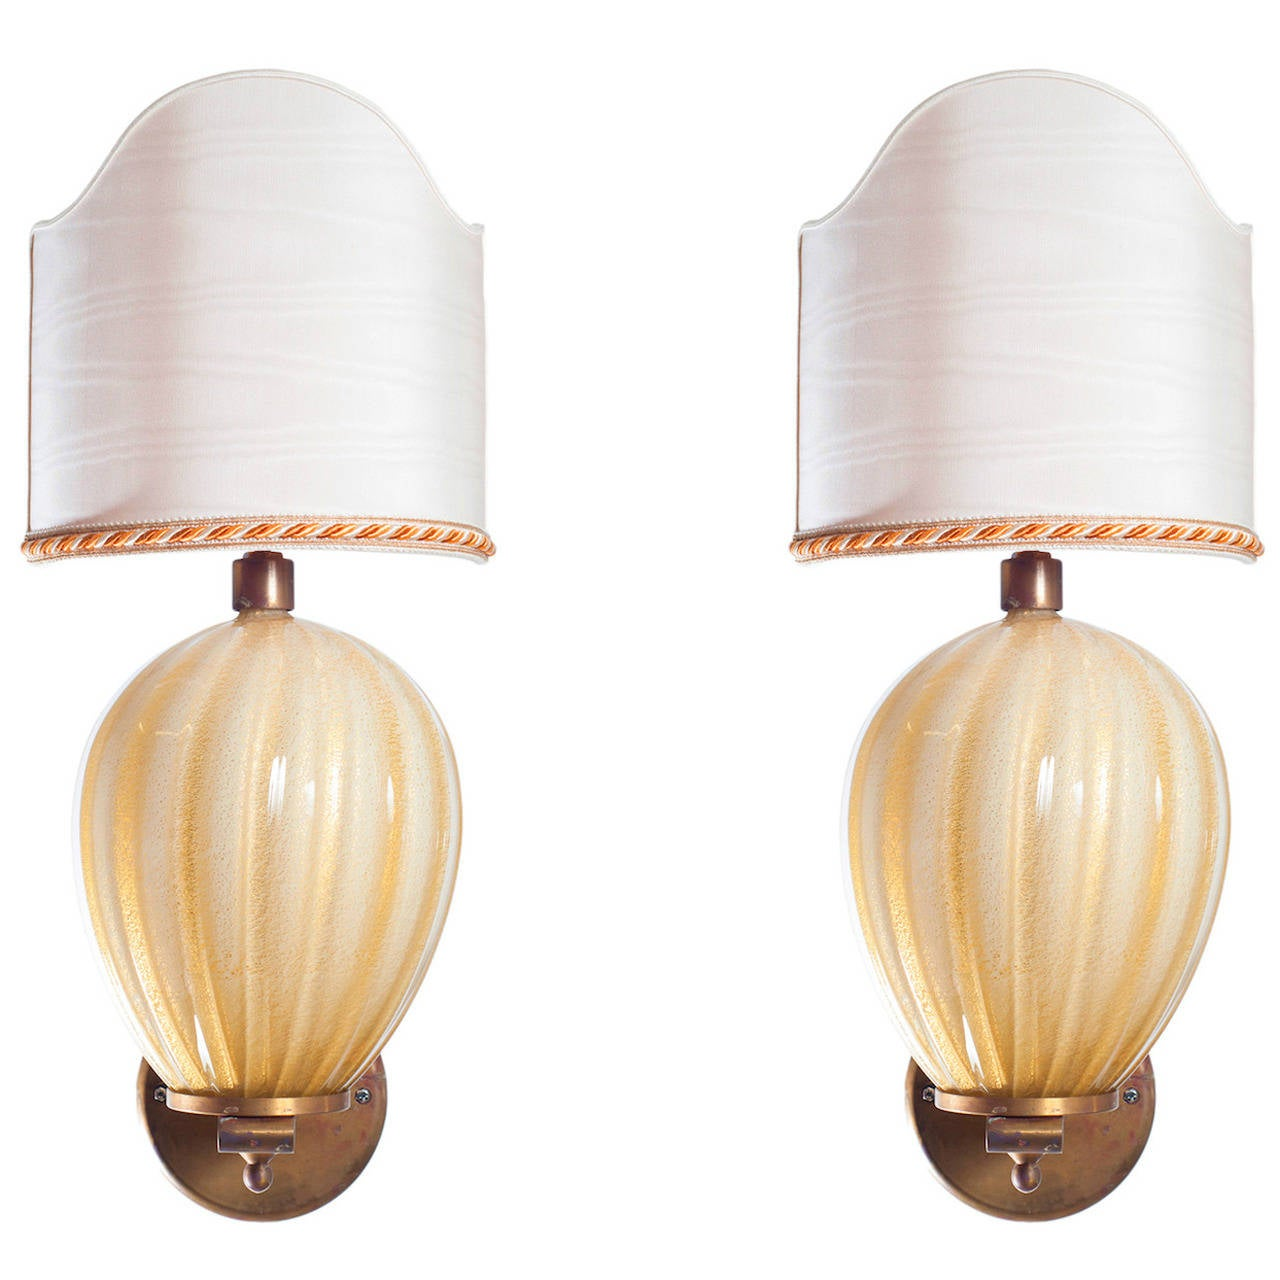 Italian Venetian Pair of Sconces, Blown Murano Glass Gold, Barovier& Toso, 1950s